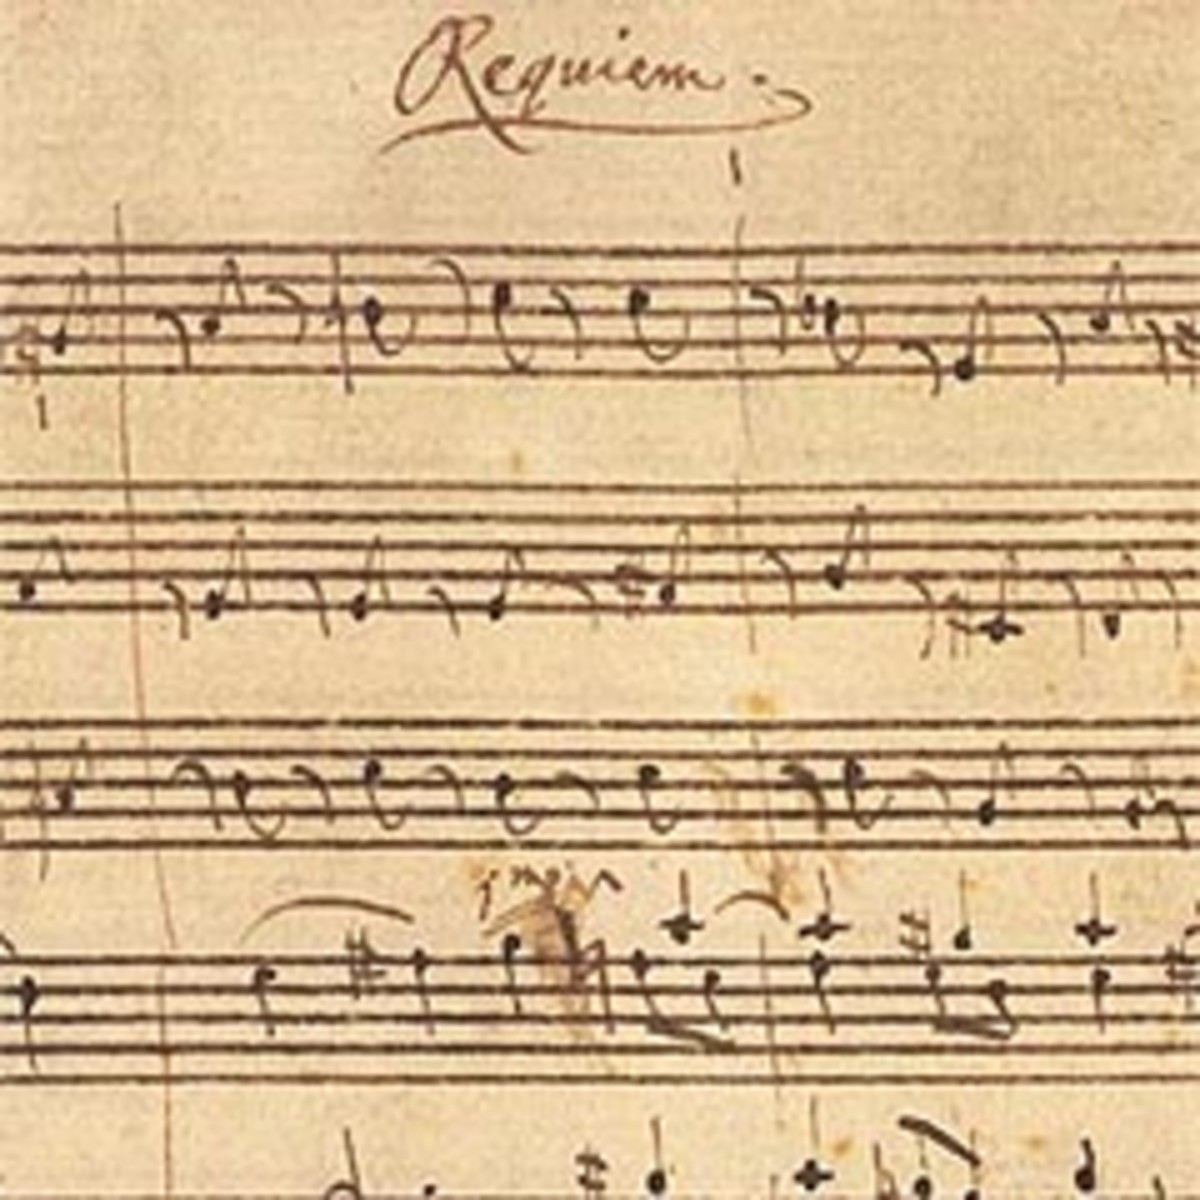 Mozart's Requiem - A Brief History